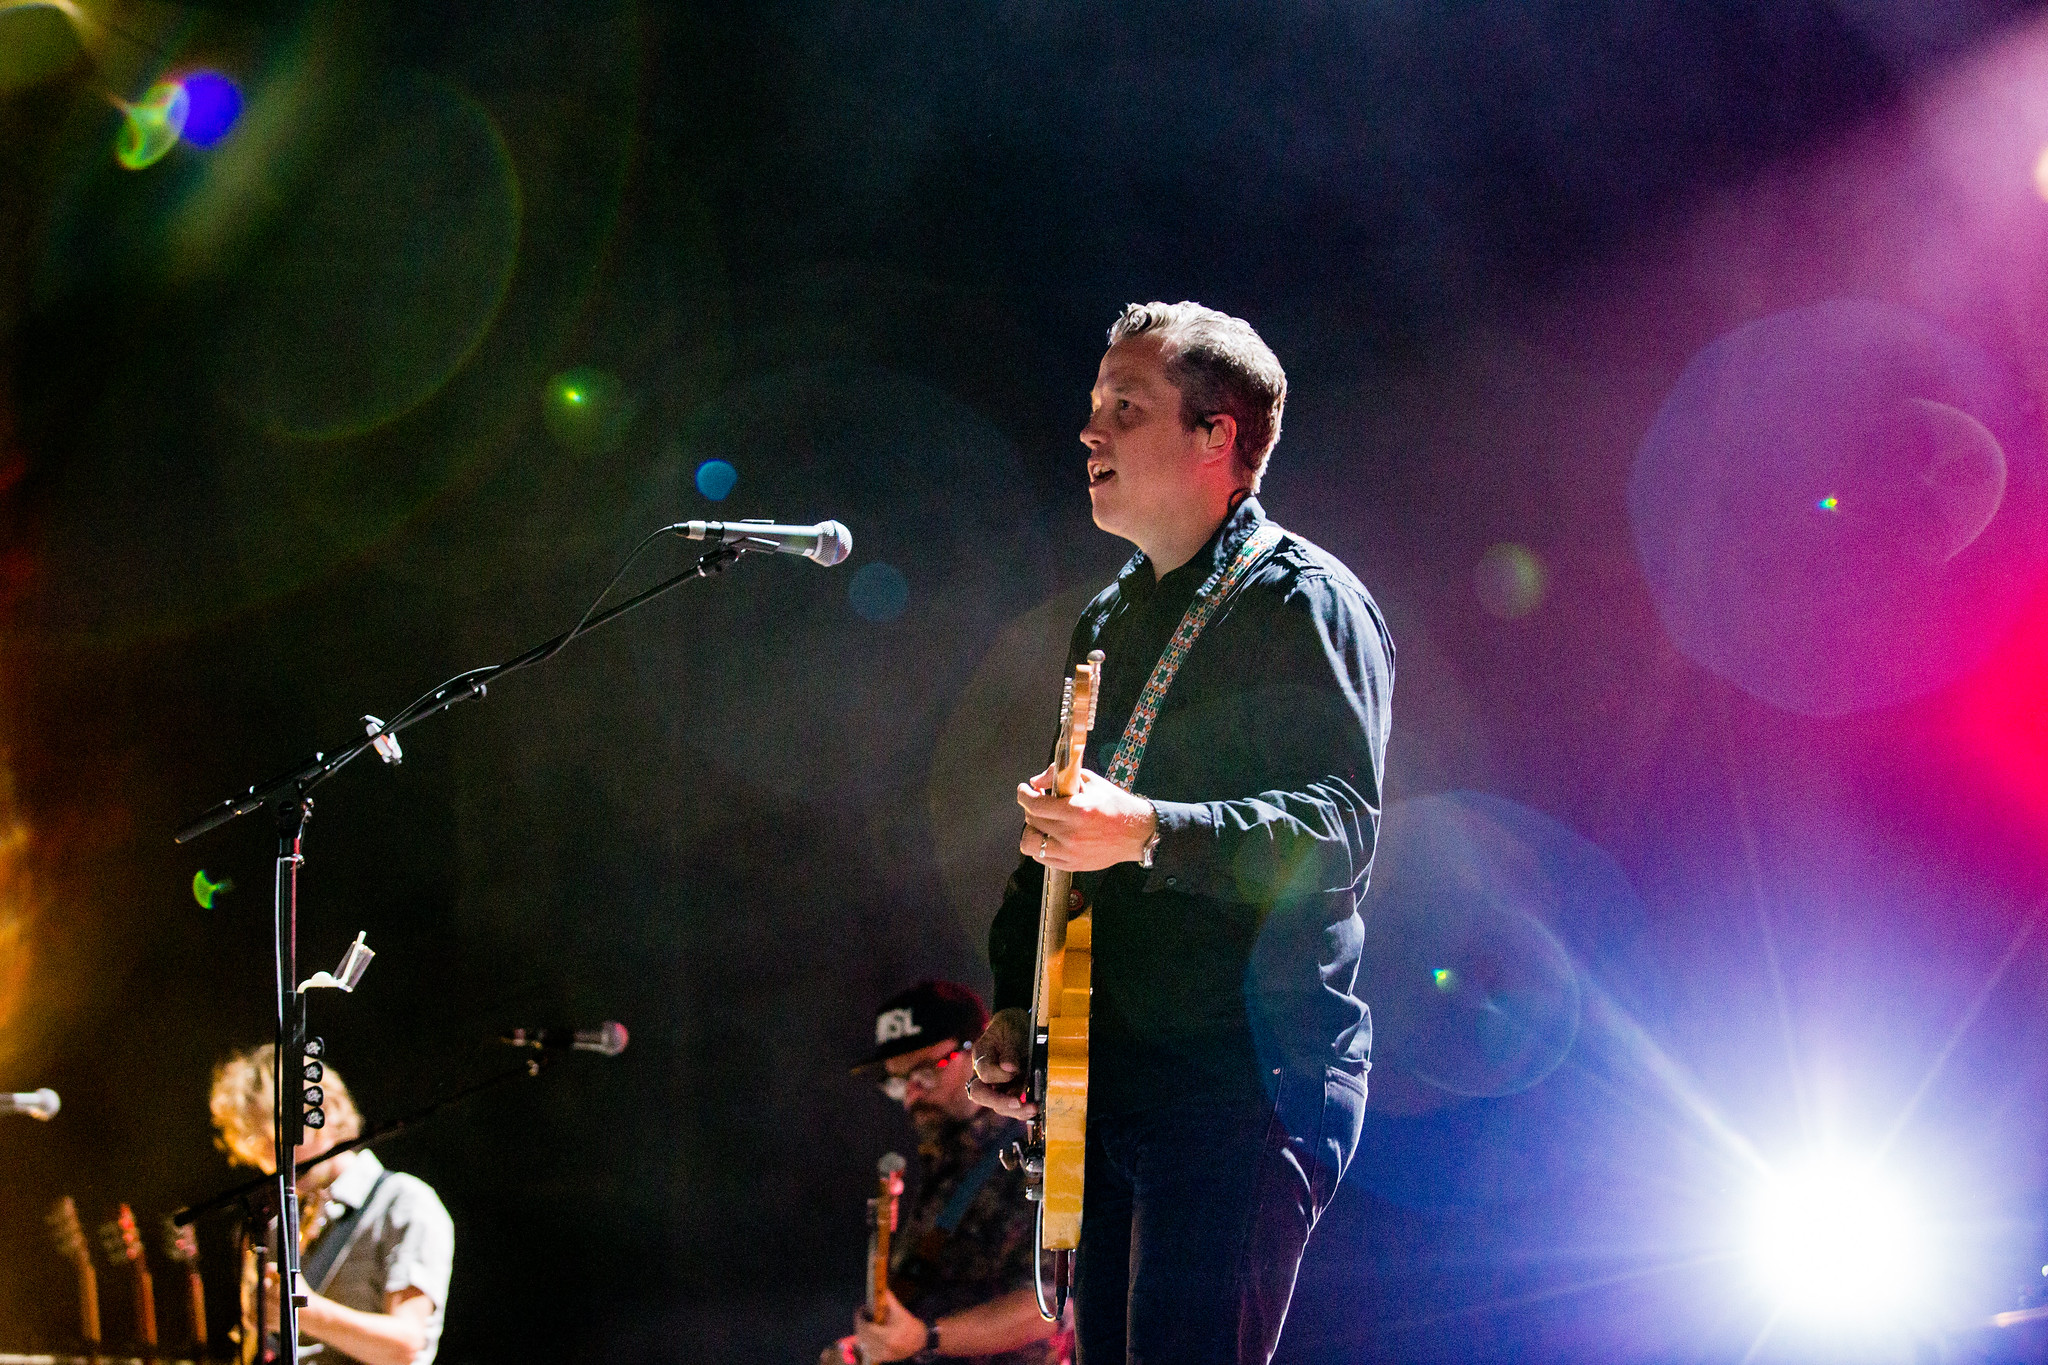 Jason Isbell & The 400 Unit